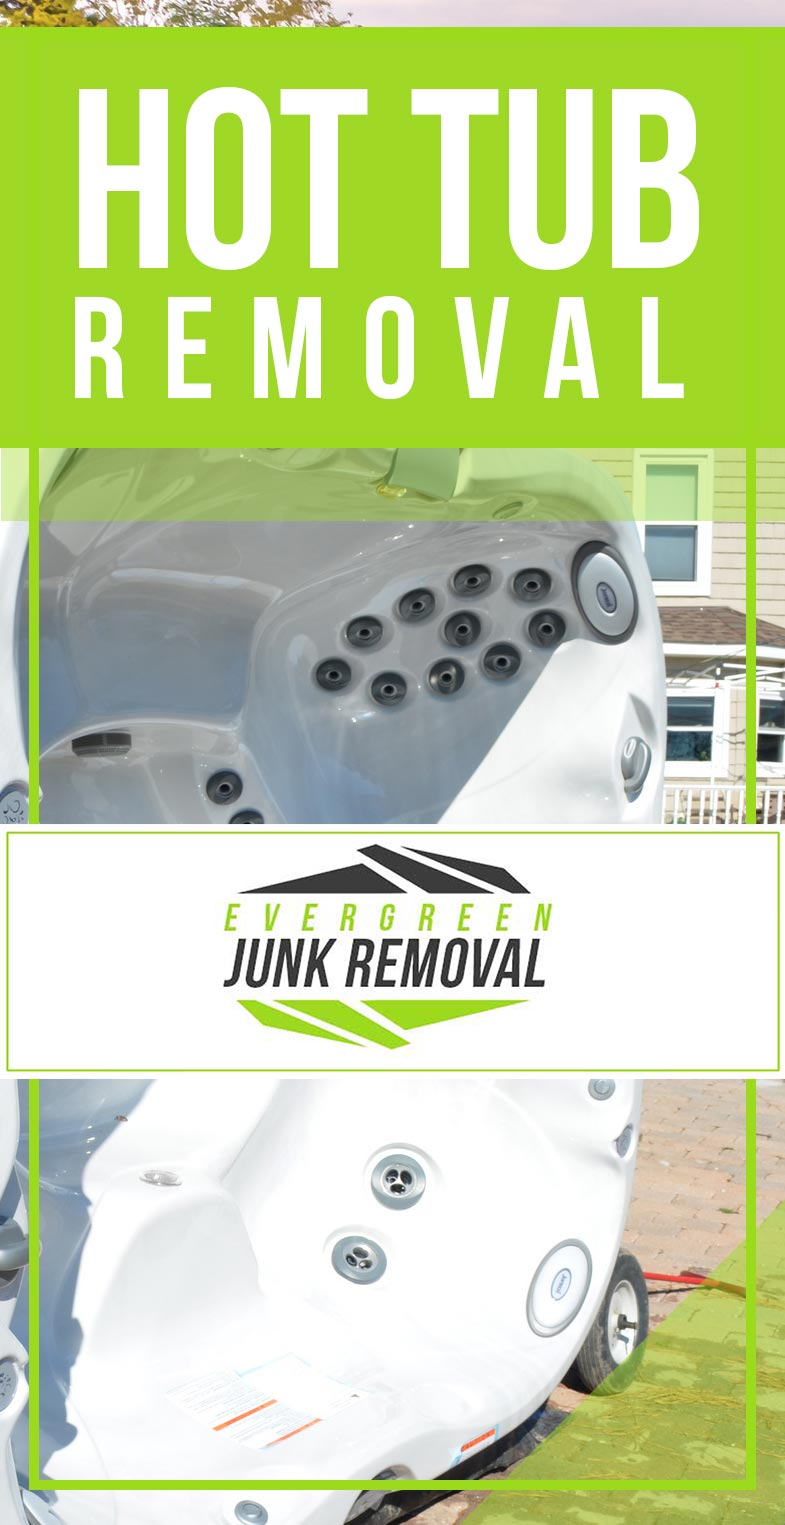 Dearborn Heights Hot Tub Removal